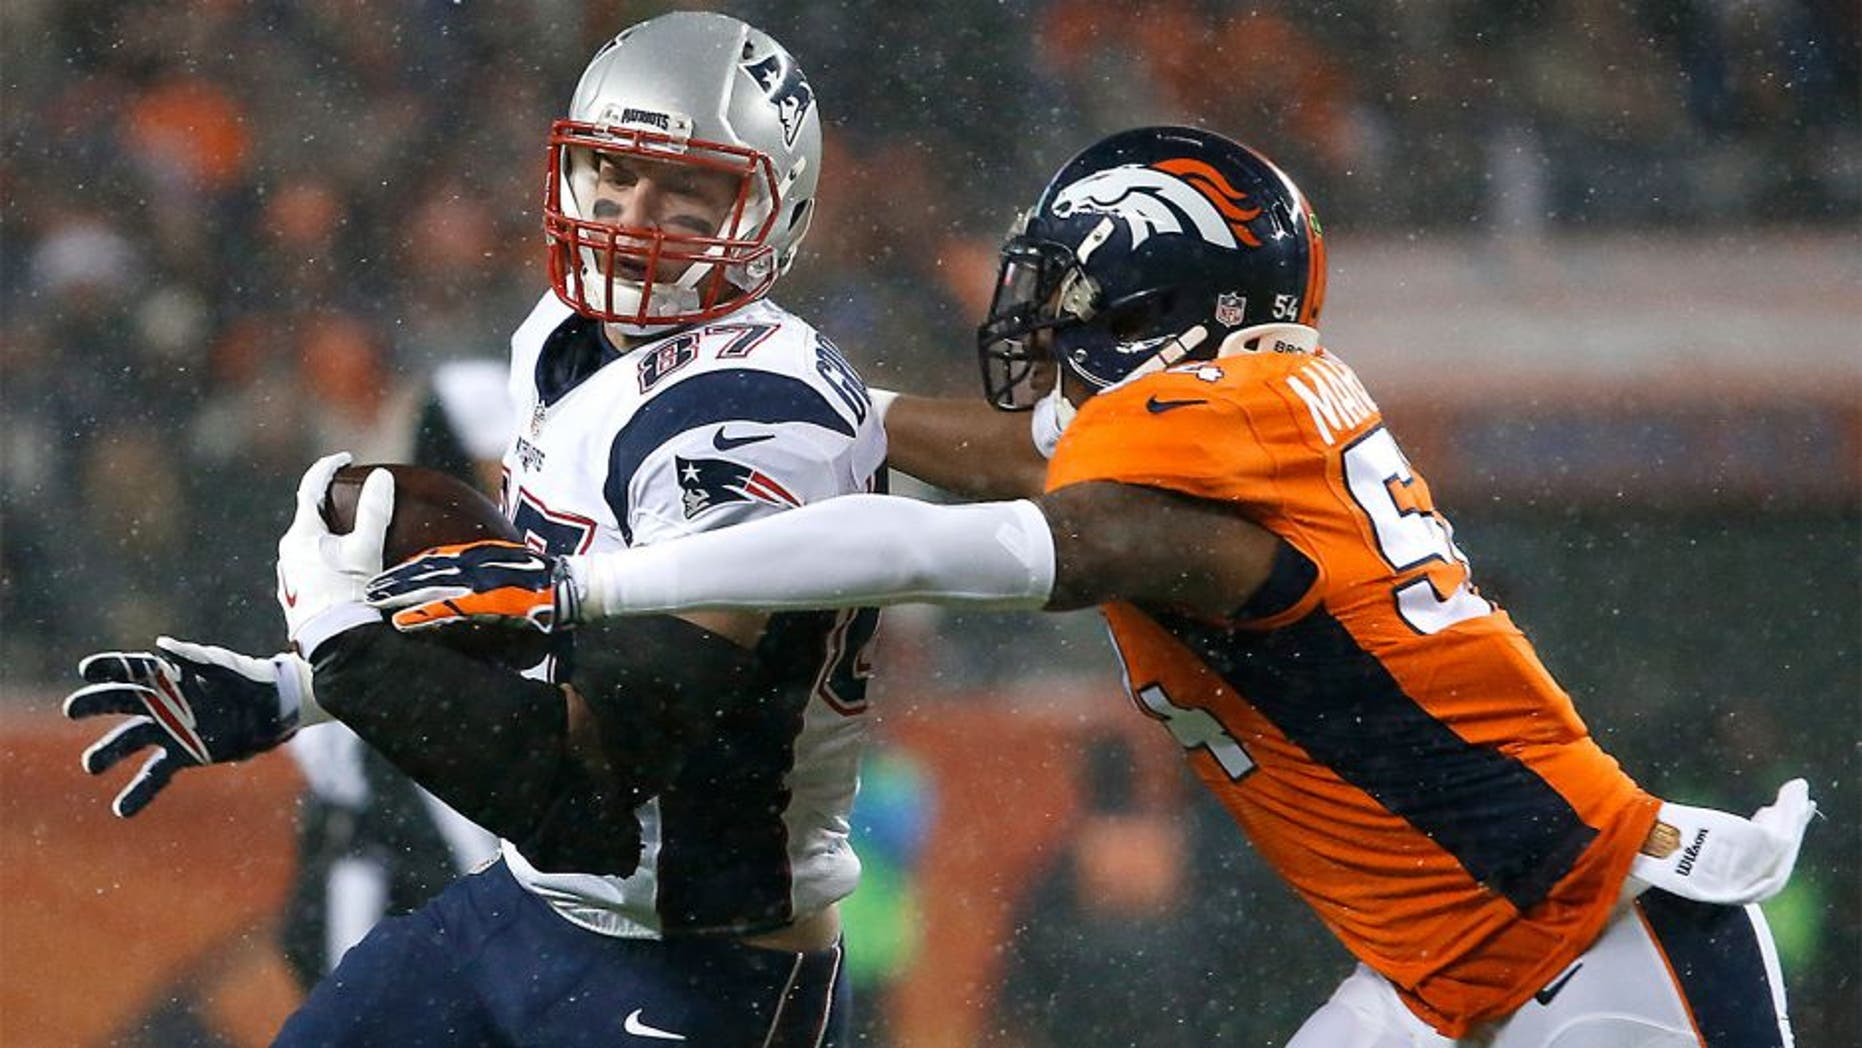 DENVER, CO - NOVEMBER 29: Patriots tight end Rob Gronkowski looks up field, picking up additional yardage after a catch before the Broncos' Brandon Marshall moved in for a tackle during first quarter action. The Denver Broncos hosted the New England Patriots for a regular season NFL game at Sports Authority Field at Mile High on Sunday, Nov. 29, 2015. (Photo by Matthew J. Lee/The Boston Globe via Getty Images)